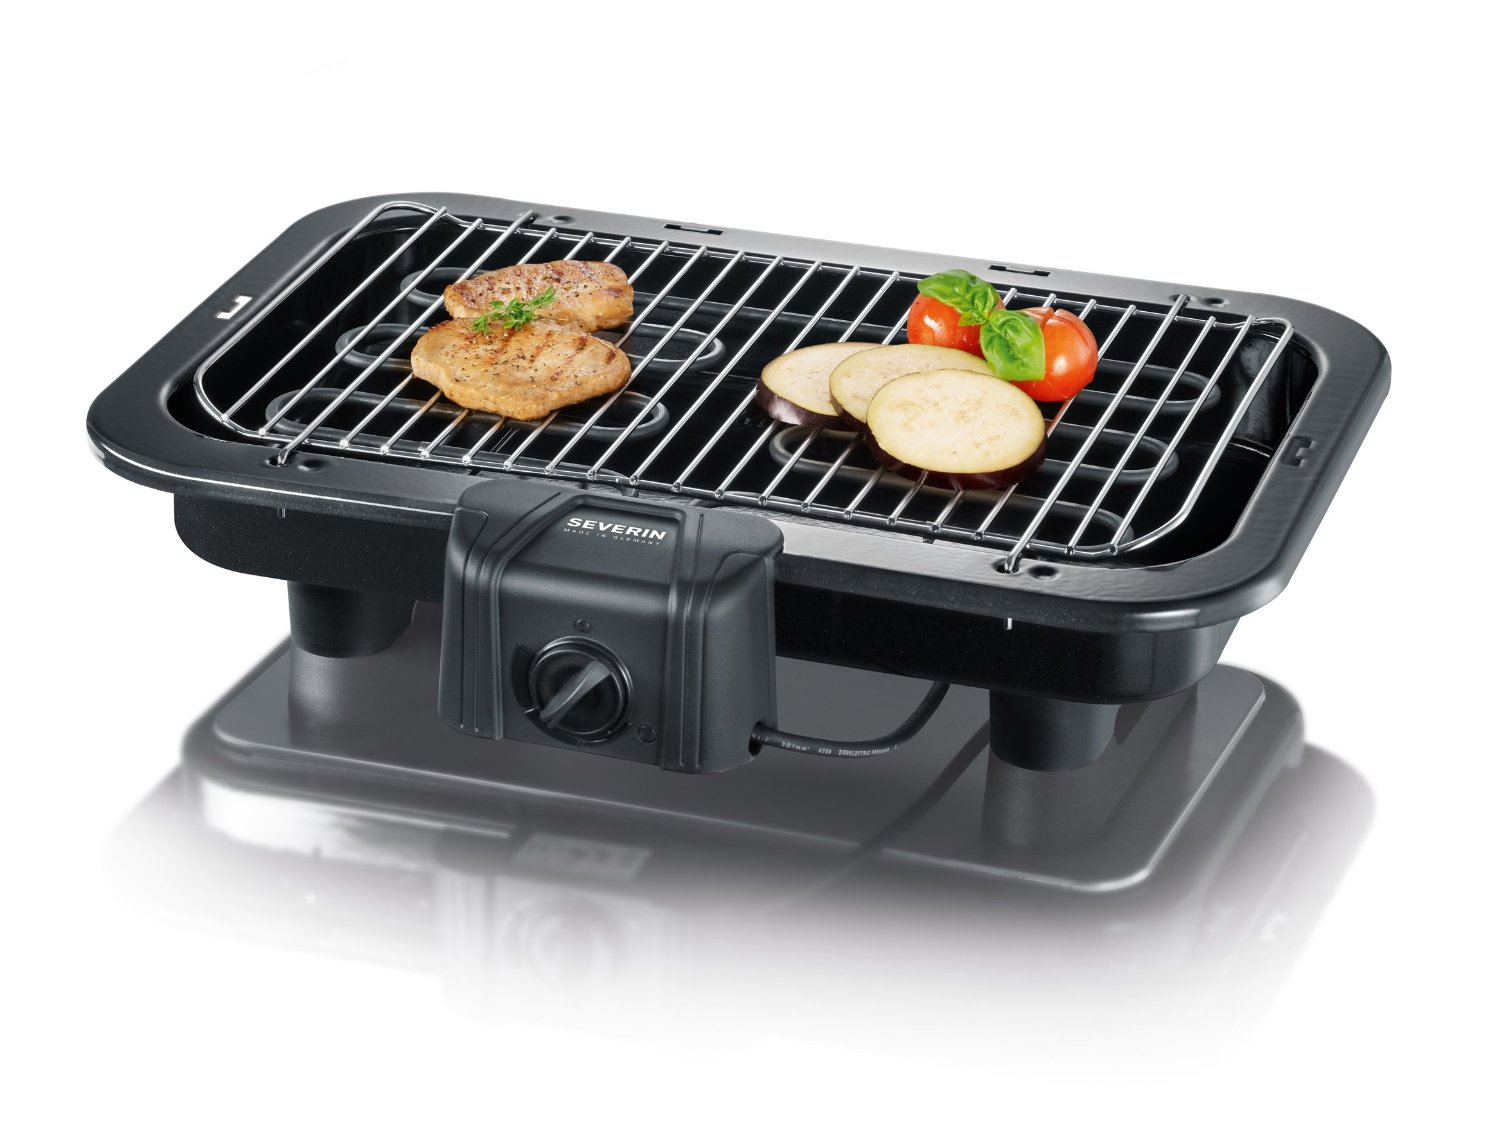 Severin Table barbecue PG 2790 2500W black Galda Grils